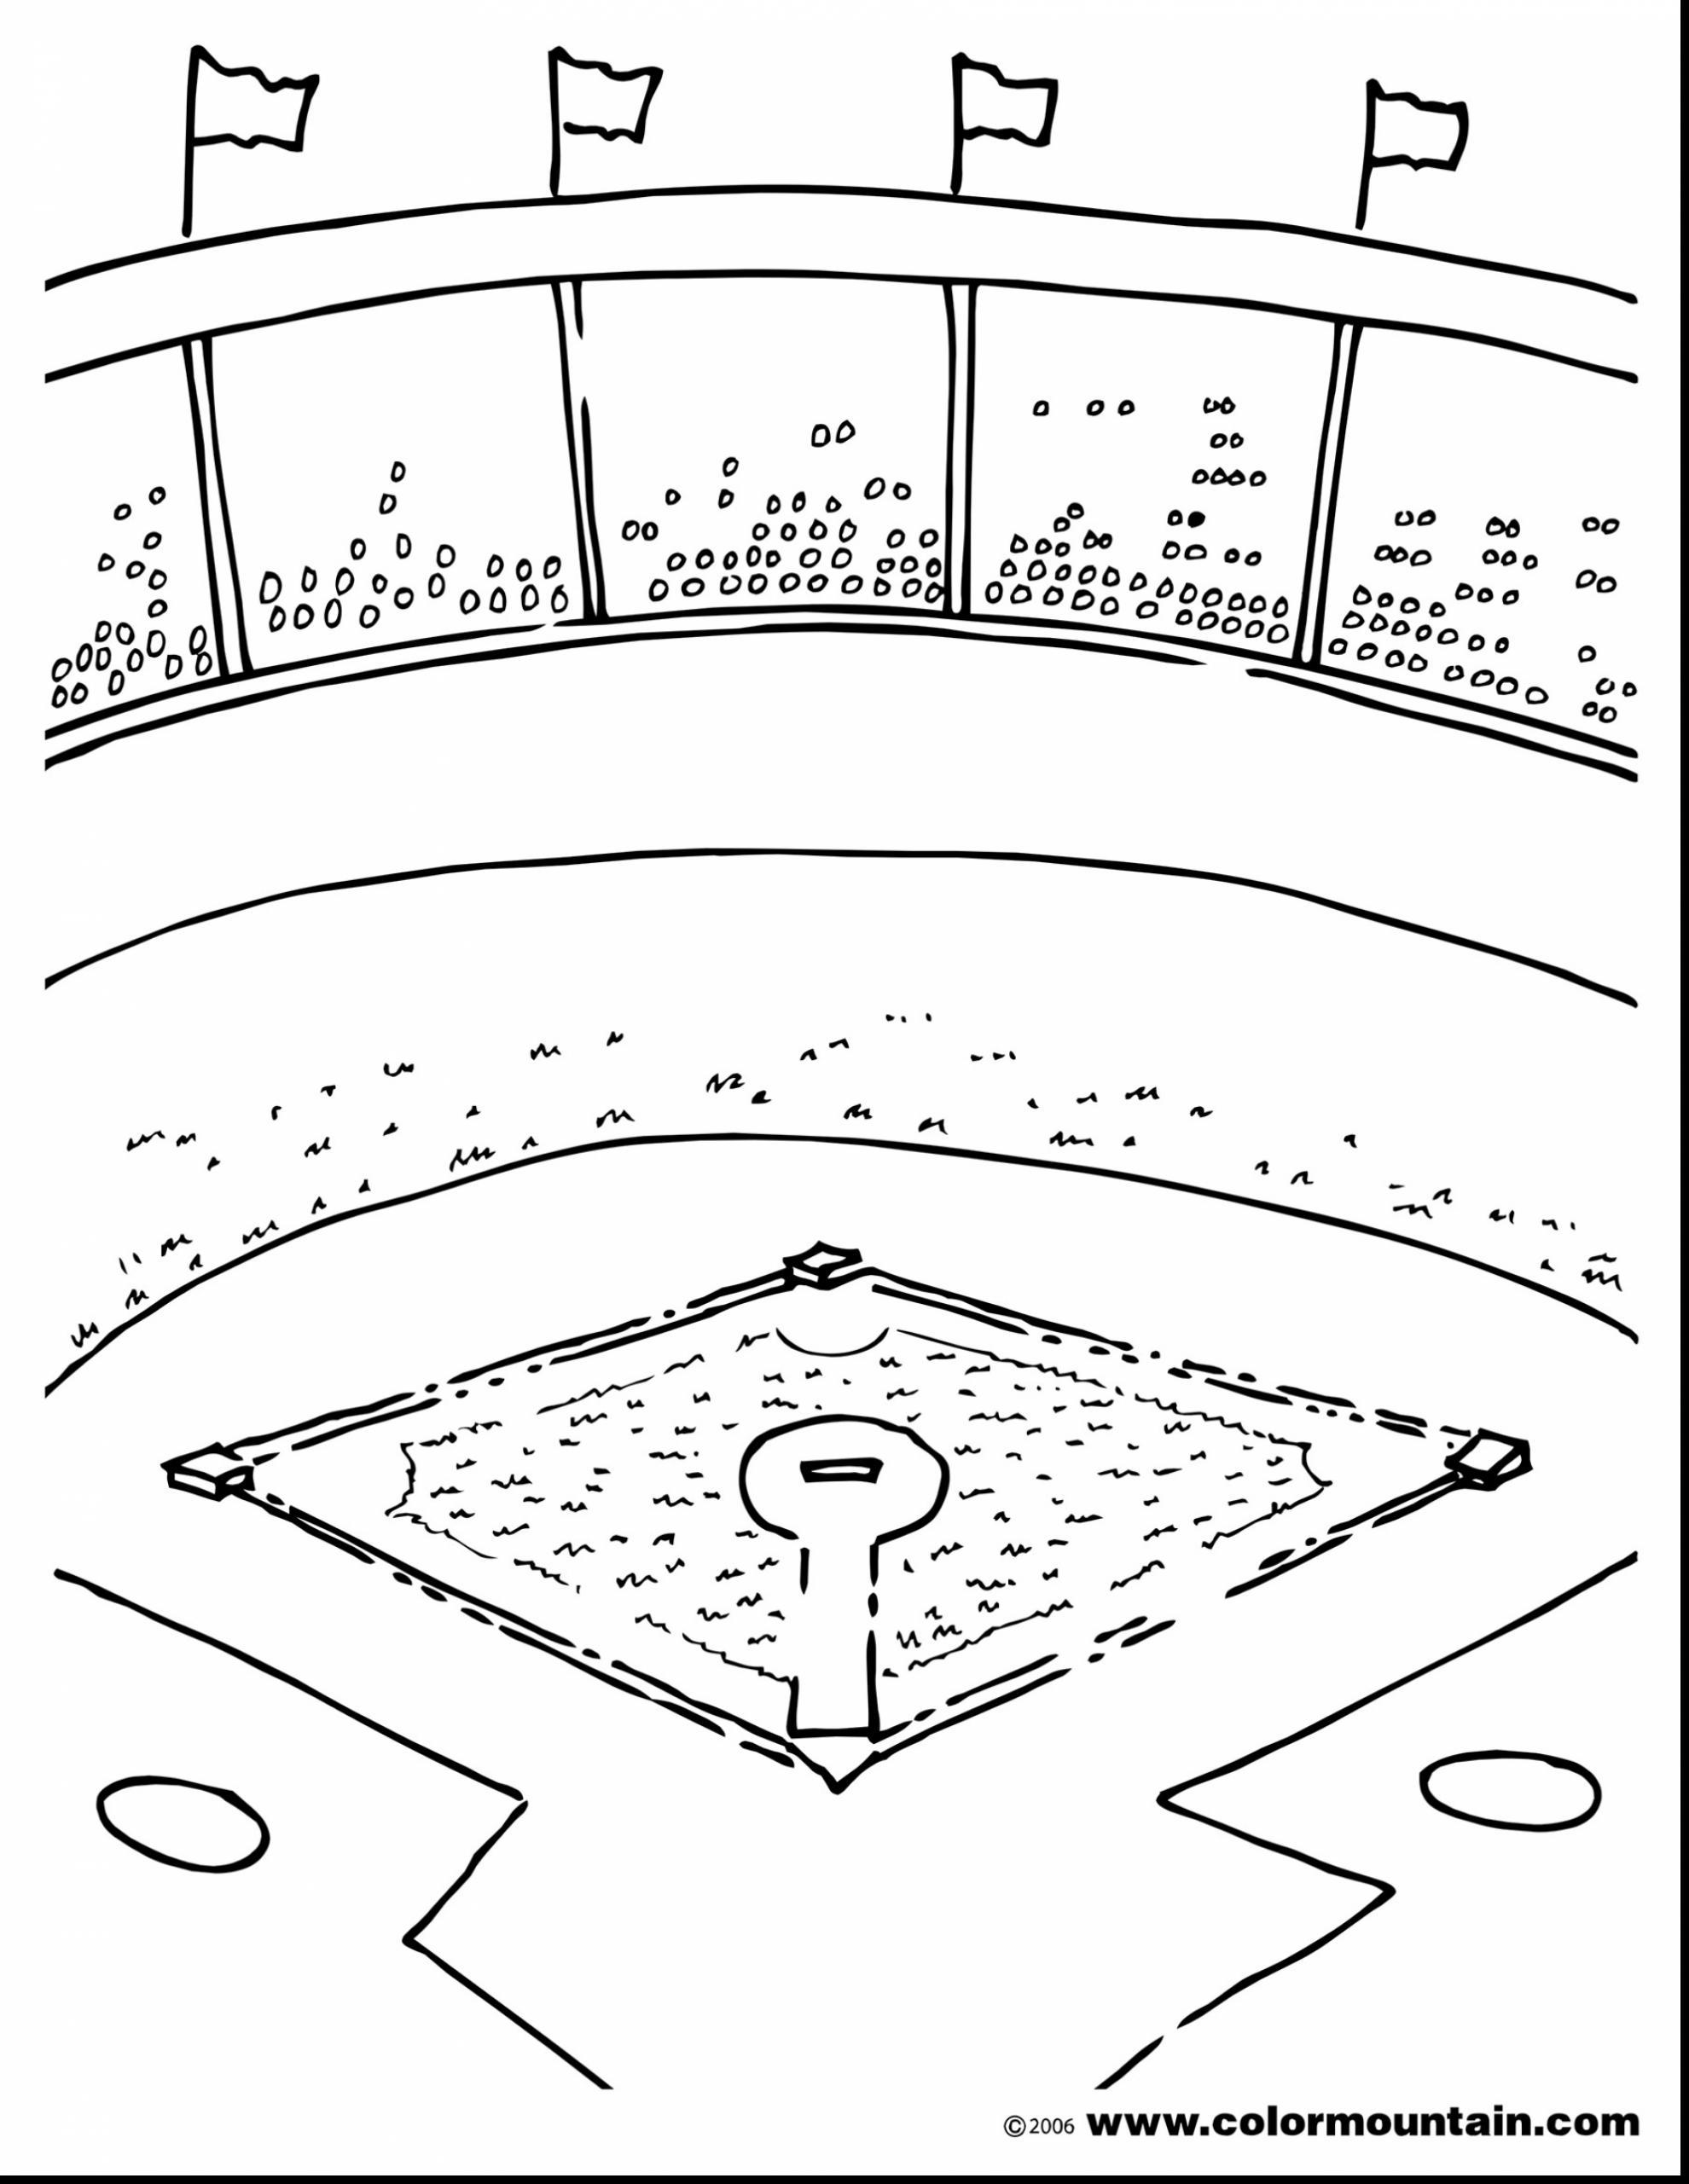 baseball diamond drawing at getdrawings com